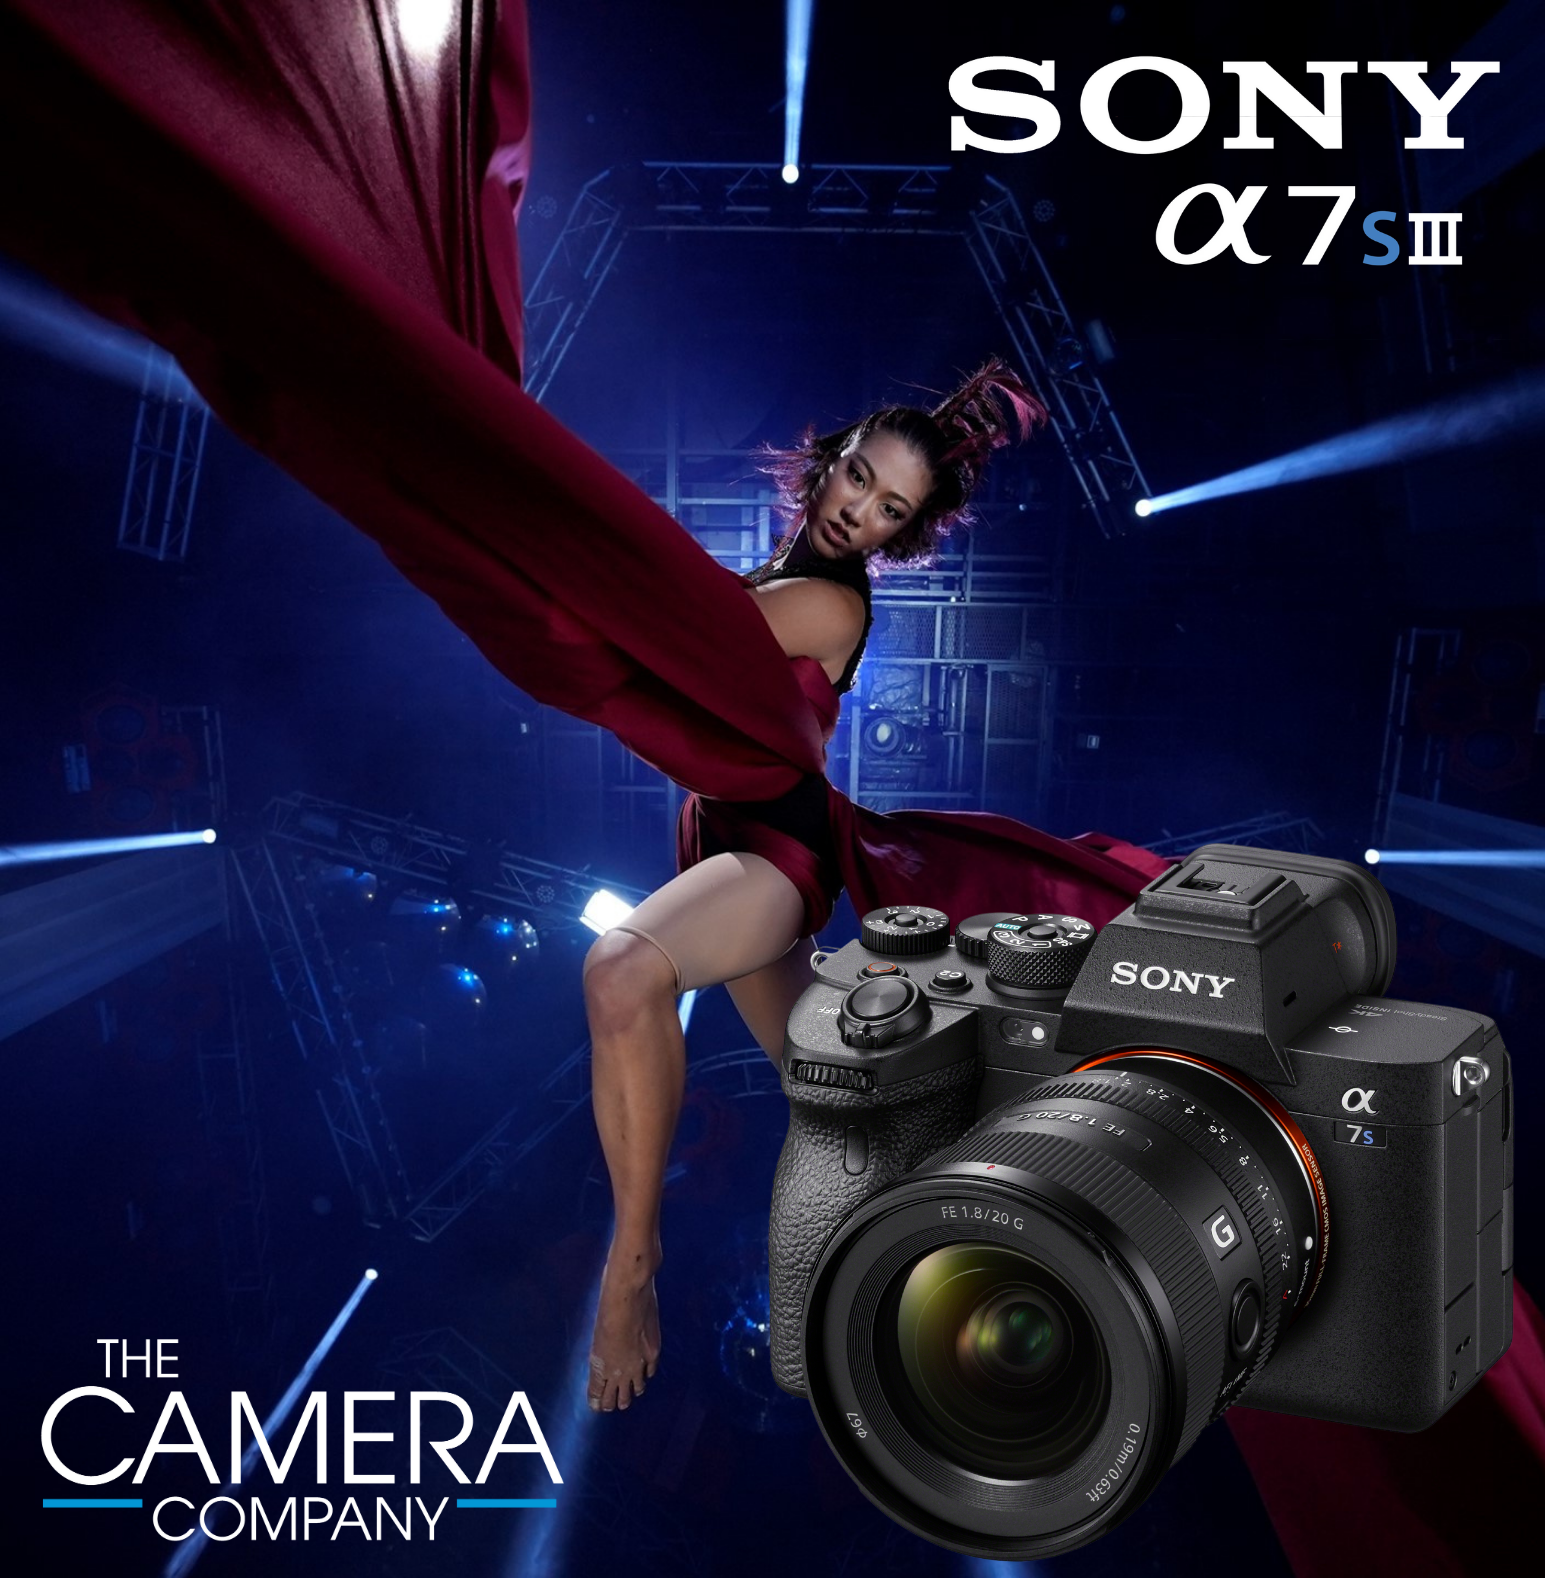 Sony a7S III Hands On with Ashley Ondricek